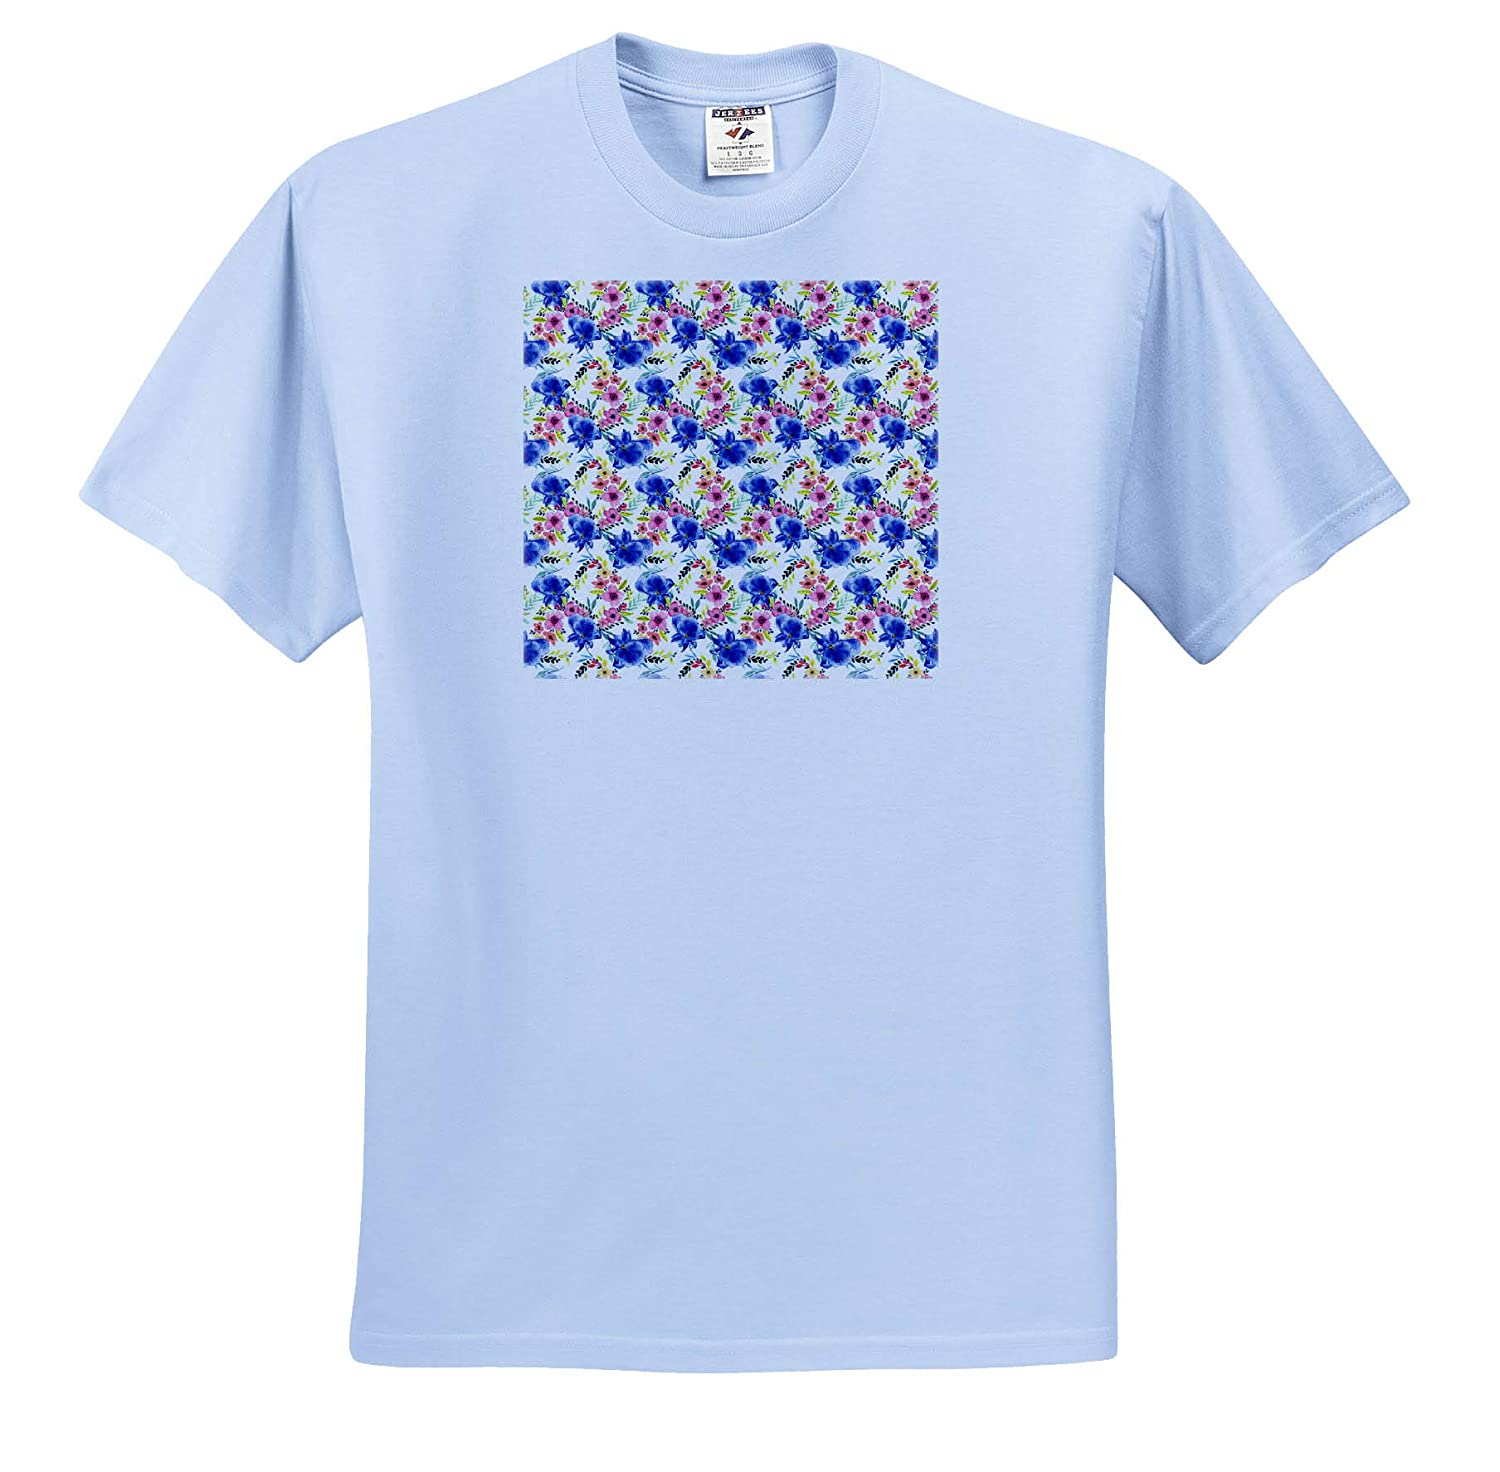 Pattern of red Flowers and Blue Irises on White Background 3dRose Alexis Design T-Shirts Pattern Floral Iris